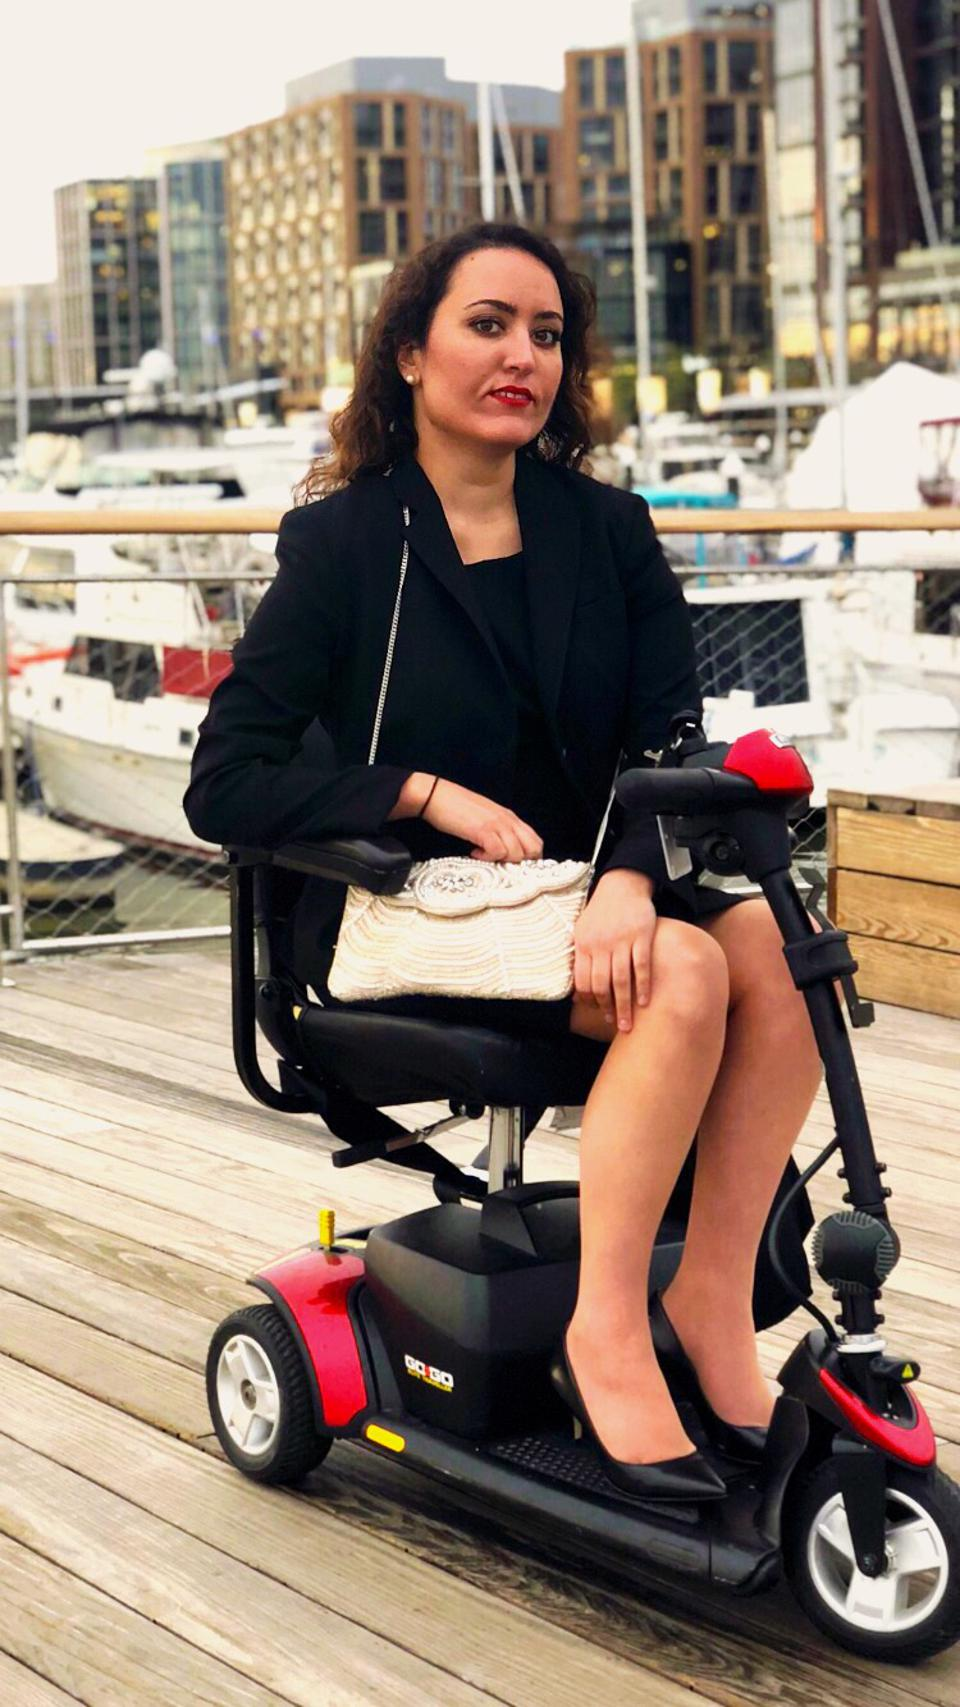 Kristin Duquette, on her motorized scooter, sits on the pier at the Washington DC Wharf.